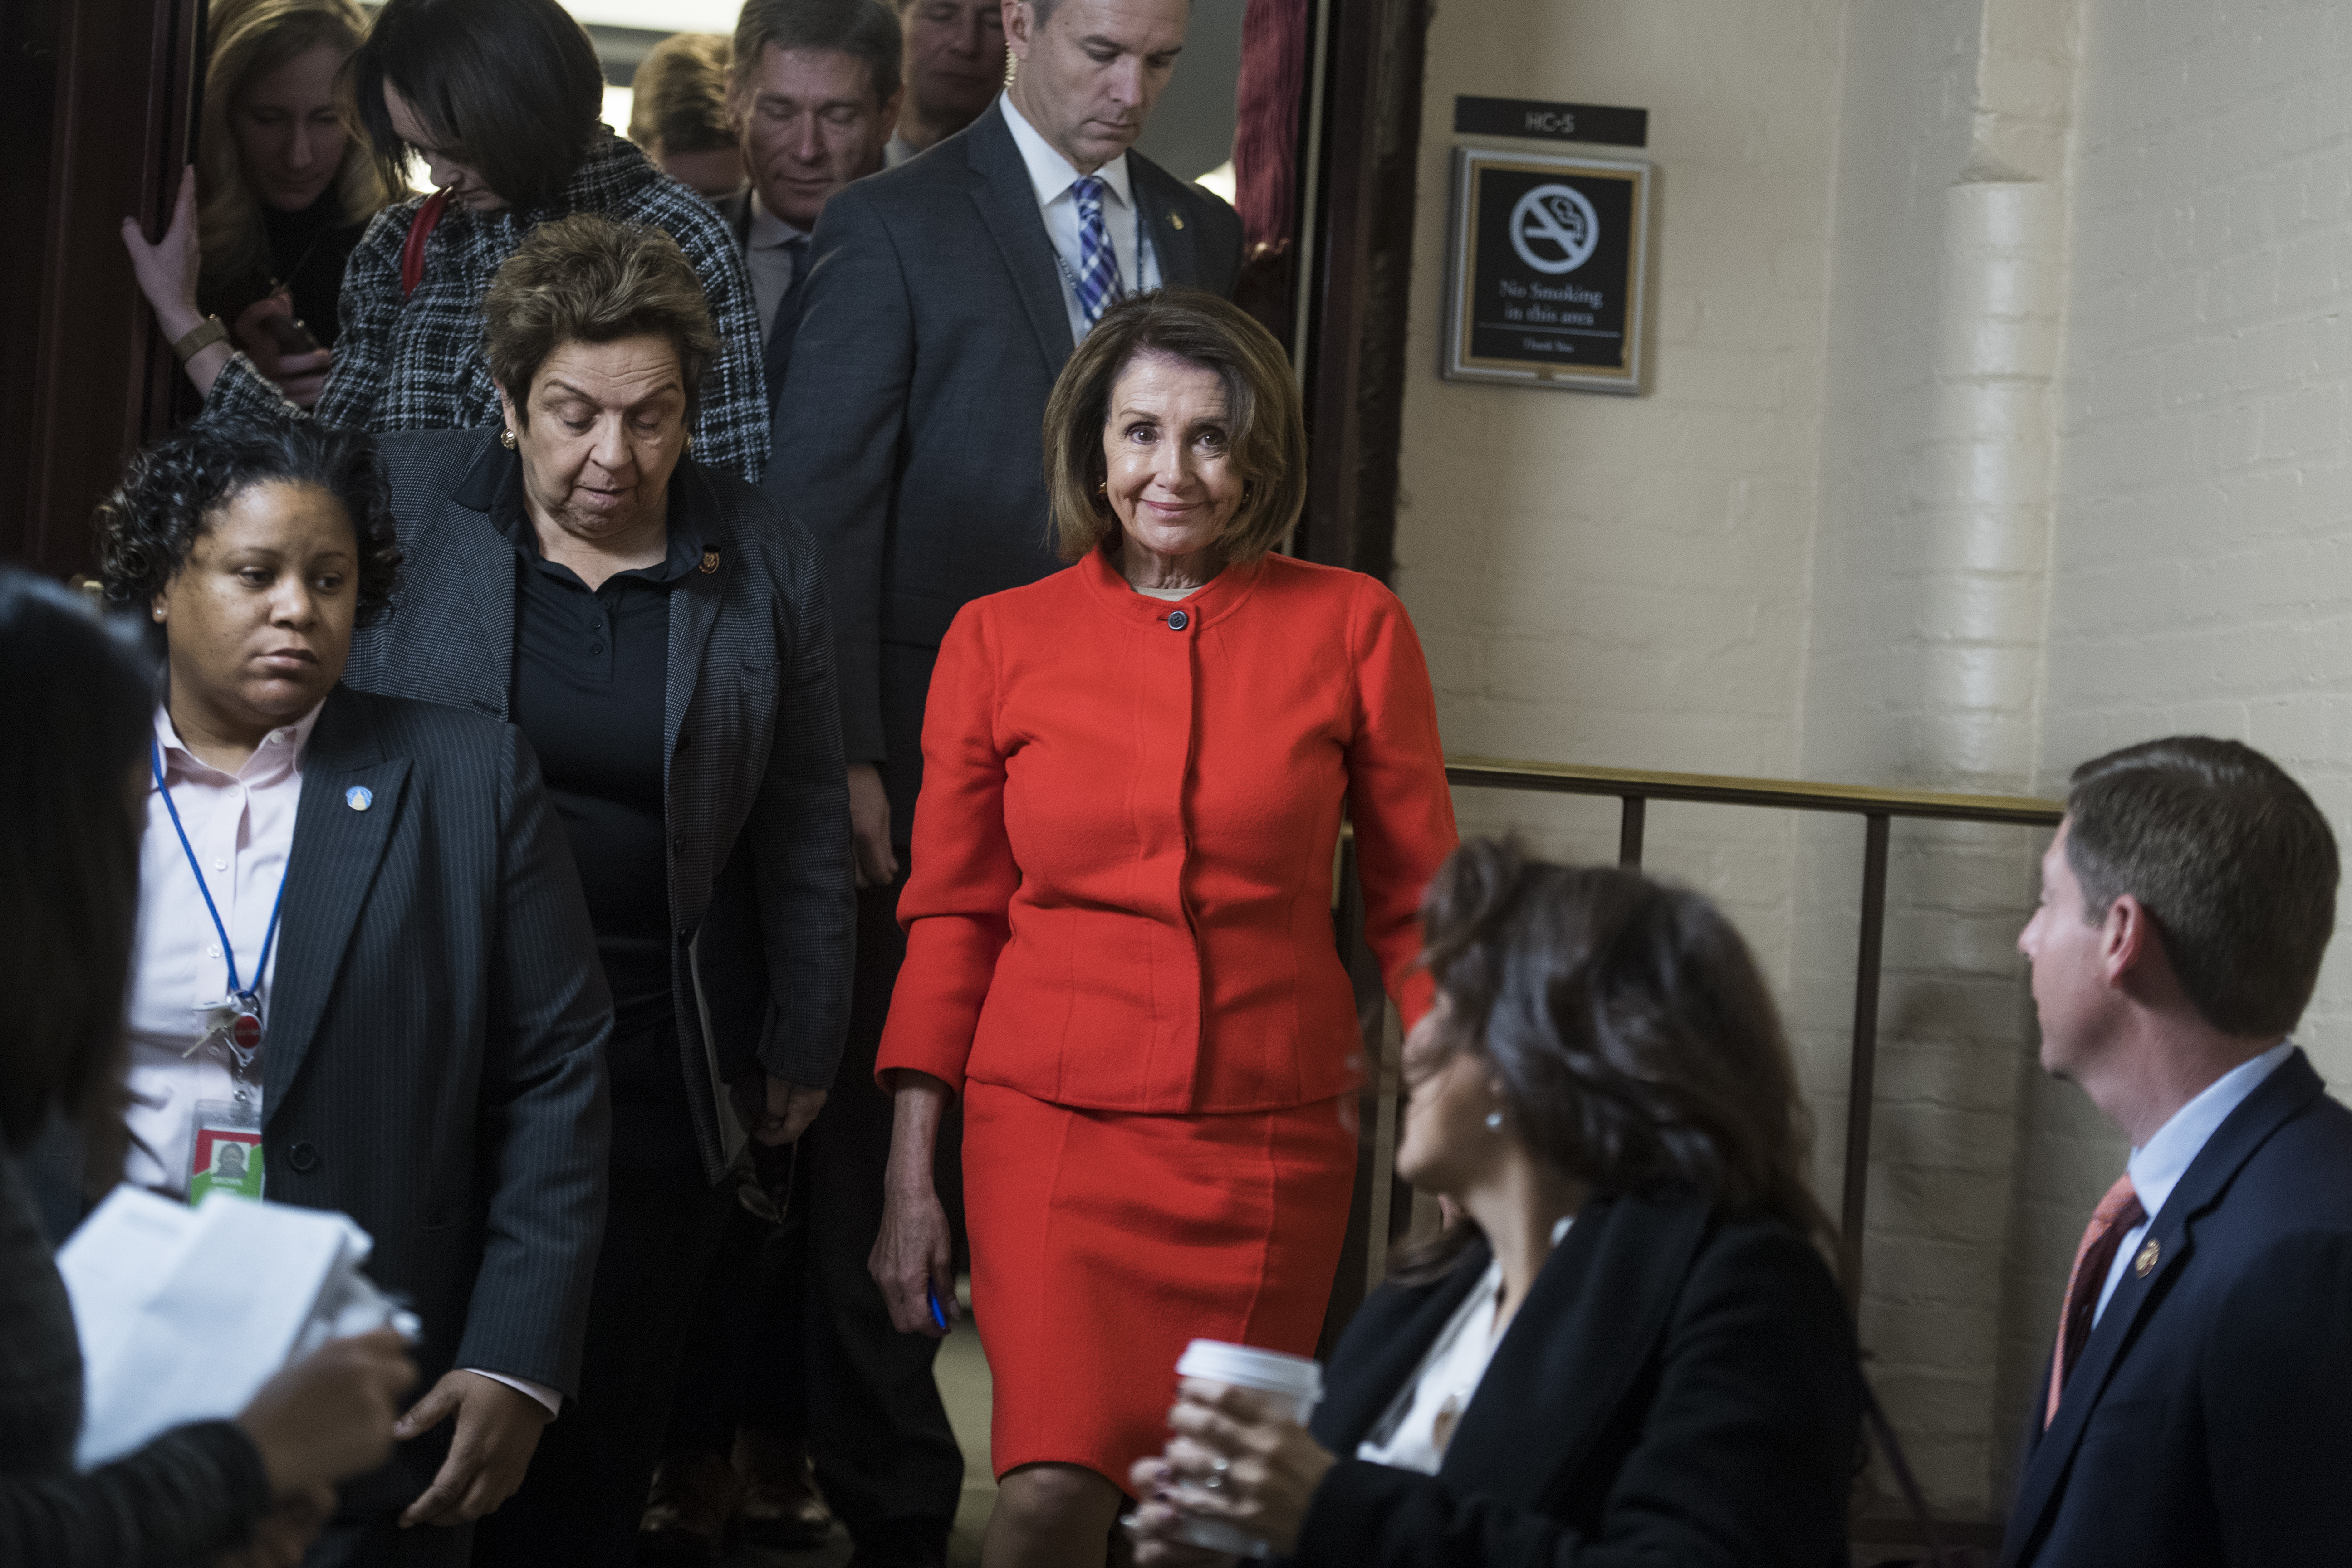 UNITED STATES - JANUARY 30: Speaker Nancy Pelosi, D-Calif., and Rep. Donna Shalala, D-Fla., left, leave a meeting of the House Democratic Caucus in the Capitol on Wednesday, January 30, 2019. (Photo By Tom Williams/CQ Roll Call)